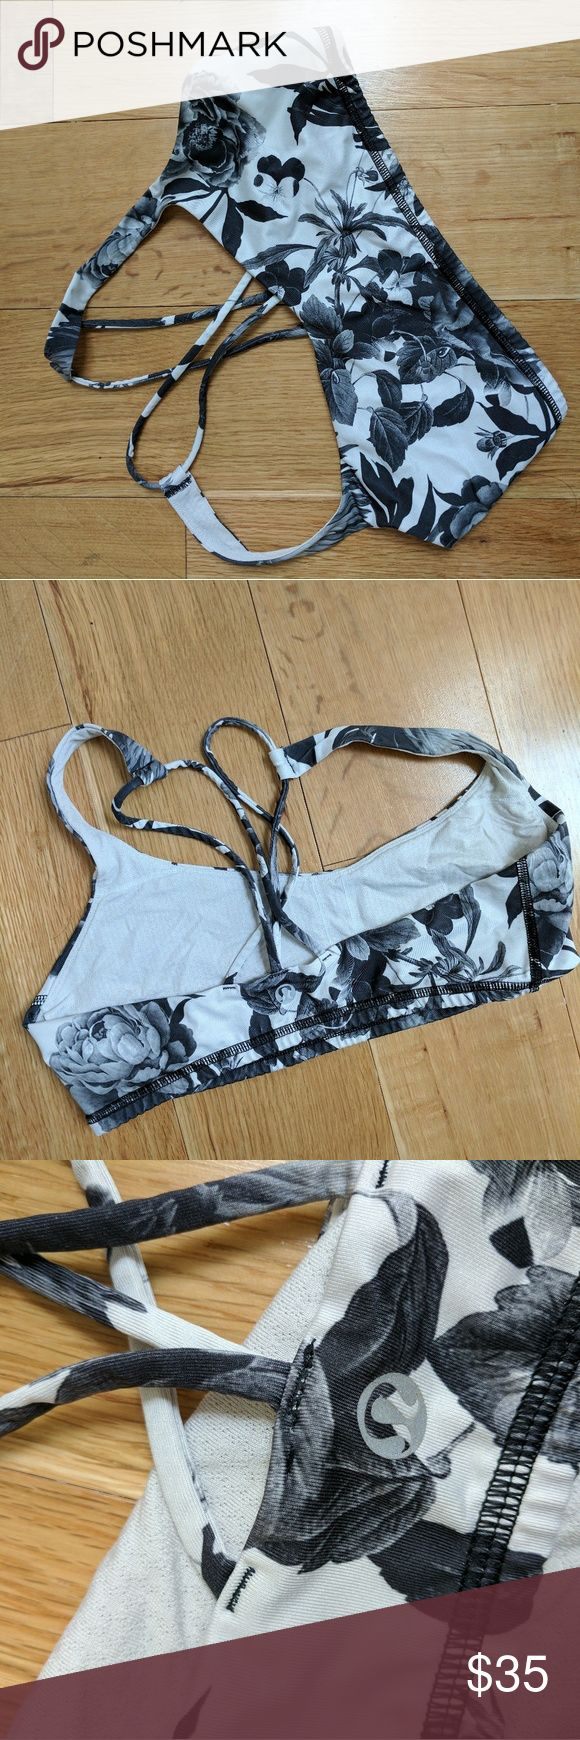 Lululemon free to be floral sports bra Good used condition! Love the unique black and white floral pattern on this sports bra - rare! Lululemon size 8 but find these to run small to size and listing as a S lululemon athletica Intimates & Sleepwear Bras